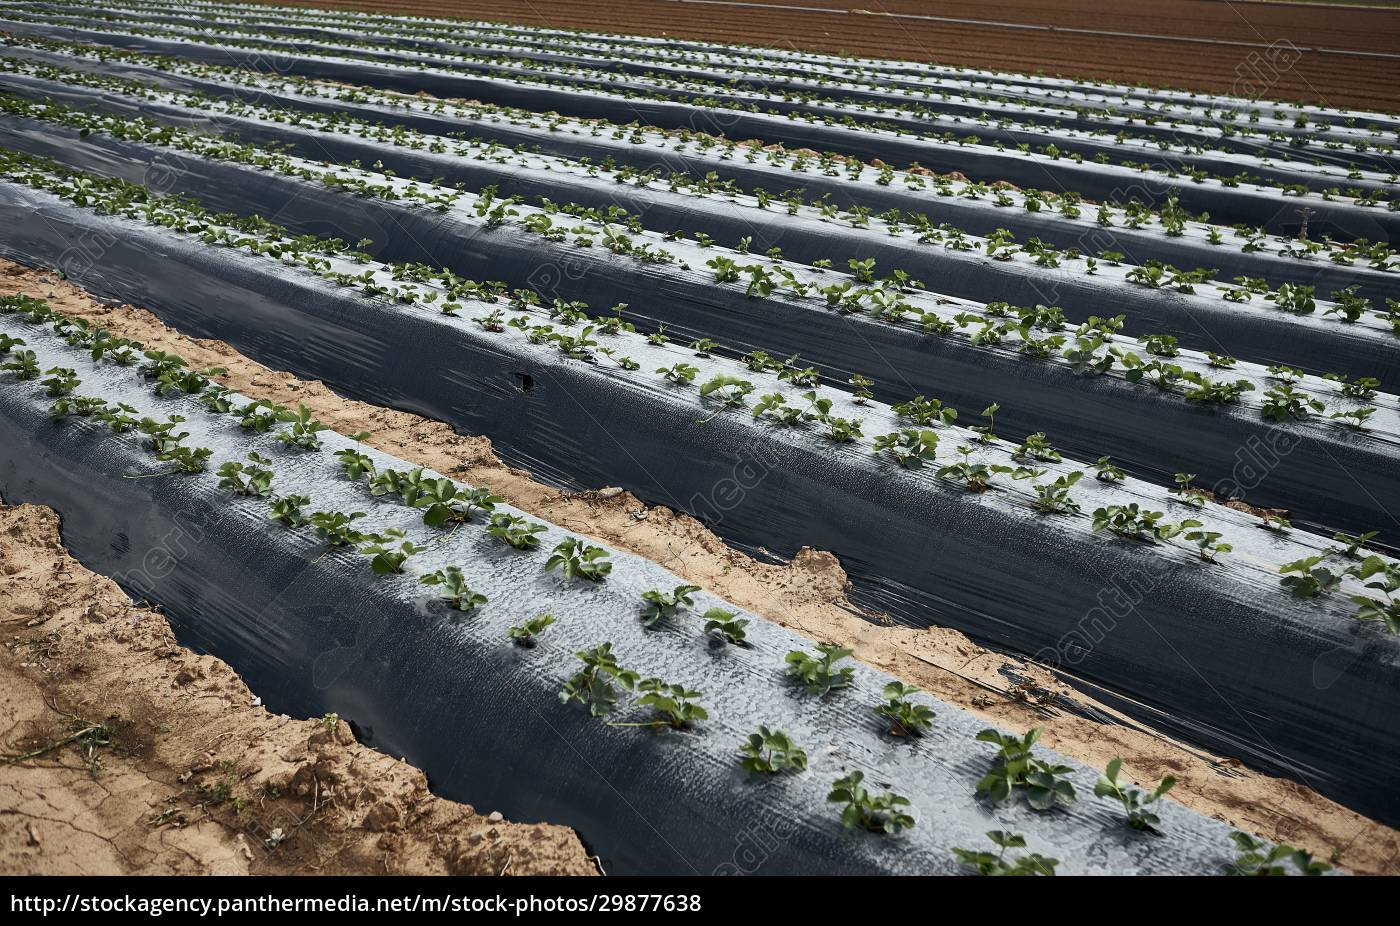 strawberry, plants, in, the, field - 29877638